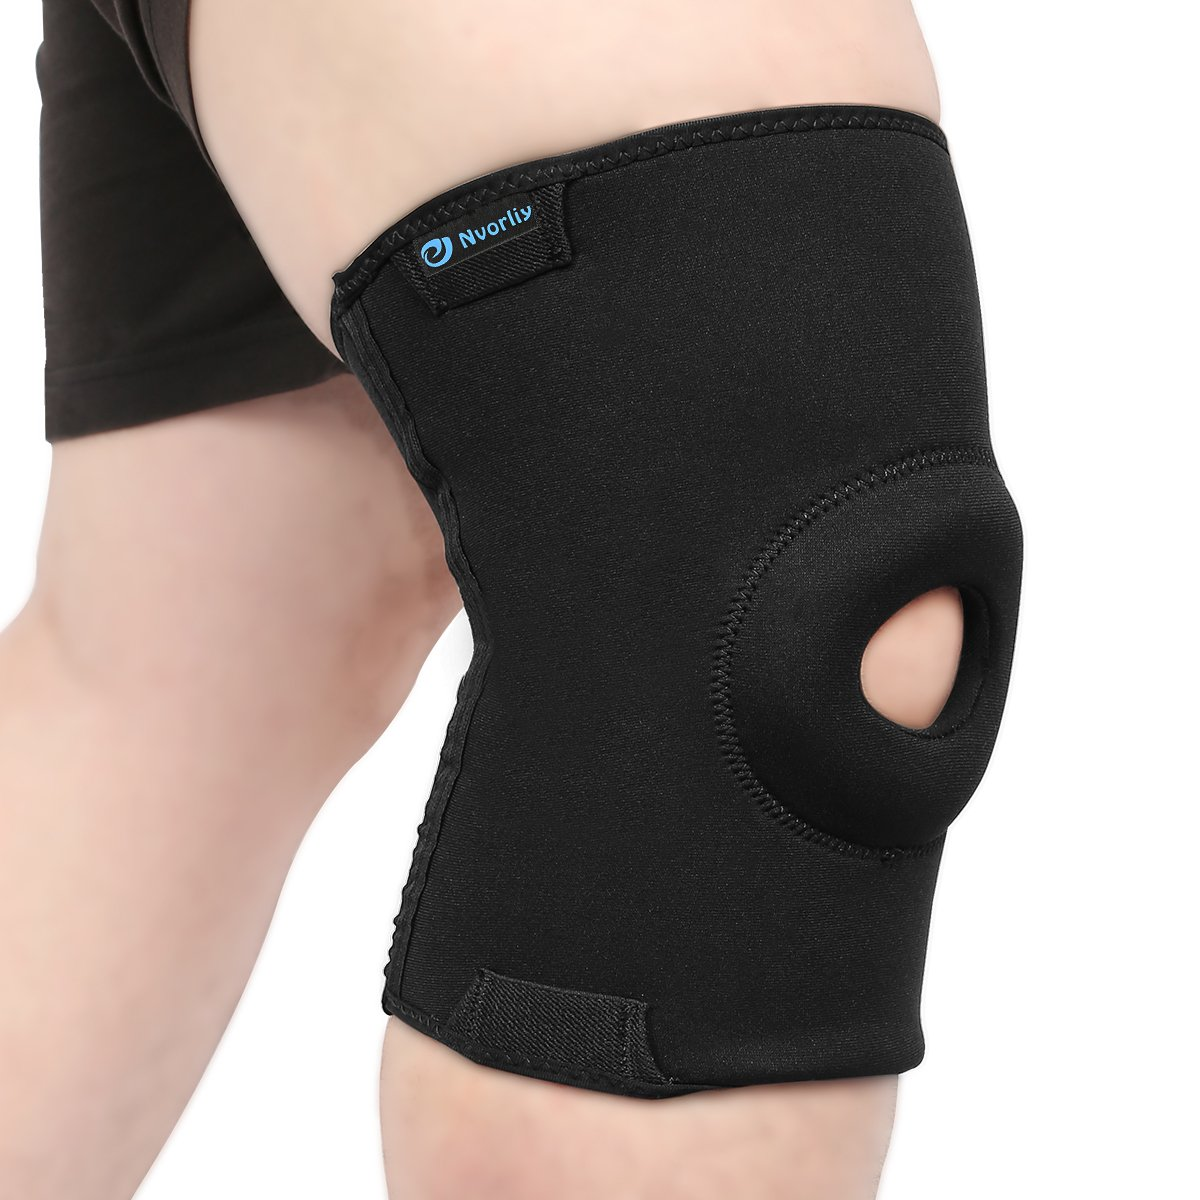 Nvorliy 4XL Plus Size Knee Compression Sleeves Design for Large Size Legs Support for Running, Sports Exercise, Joint Pain Relief, Arthritis, ACL and Post-Surgery Recovery, Fit Men and Women (4XL)